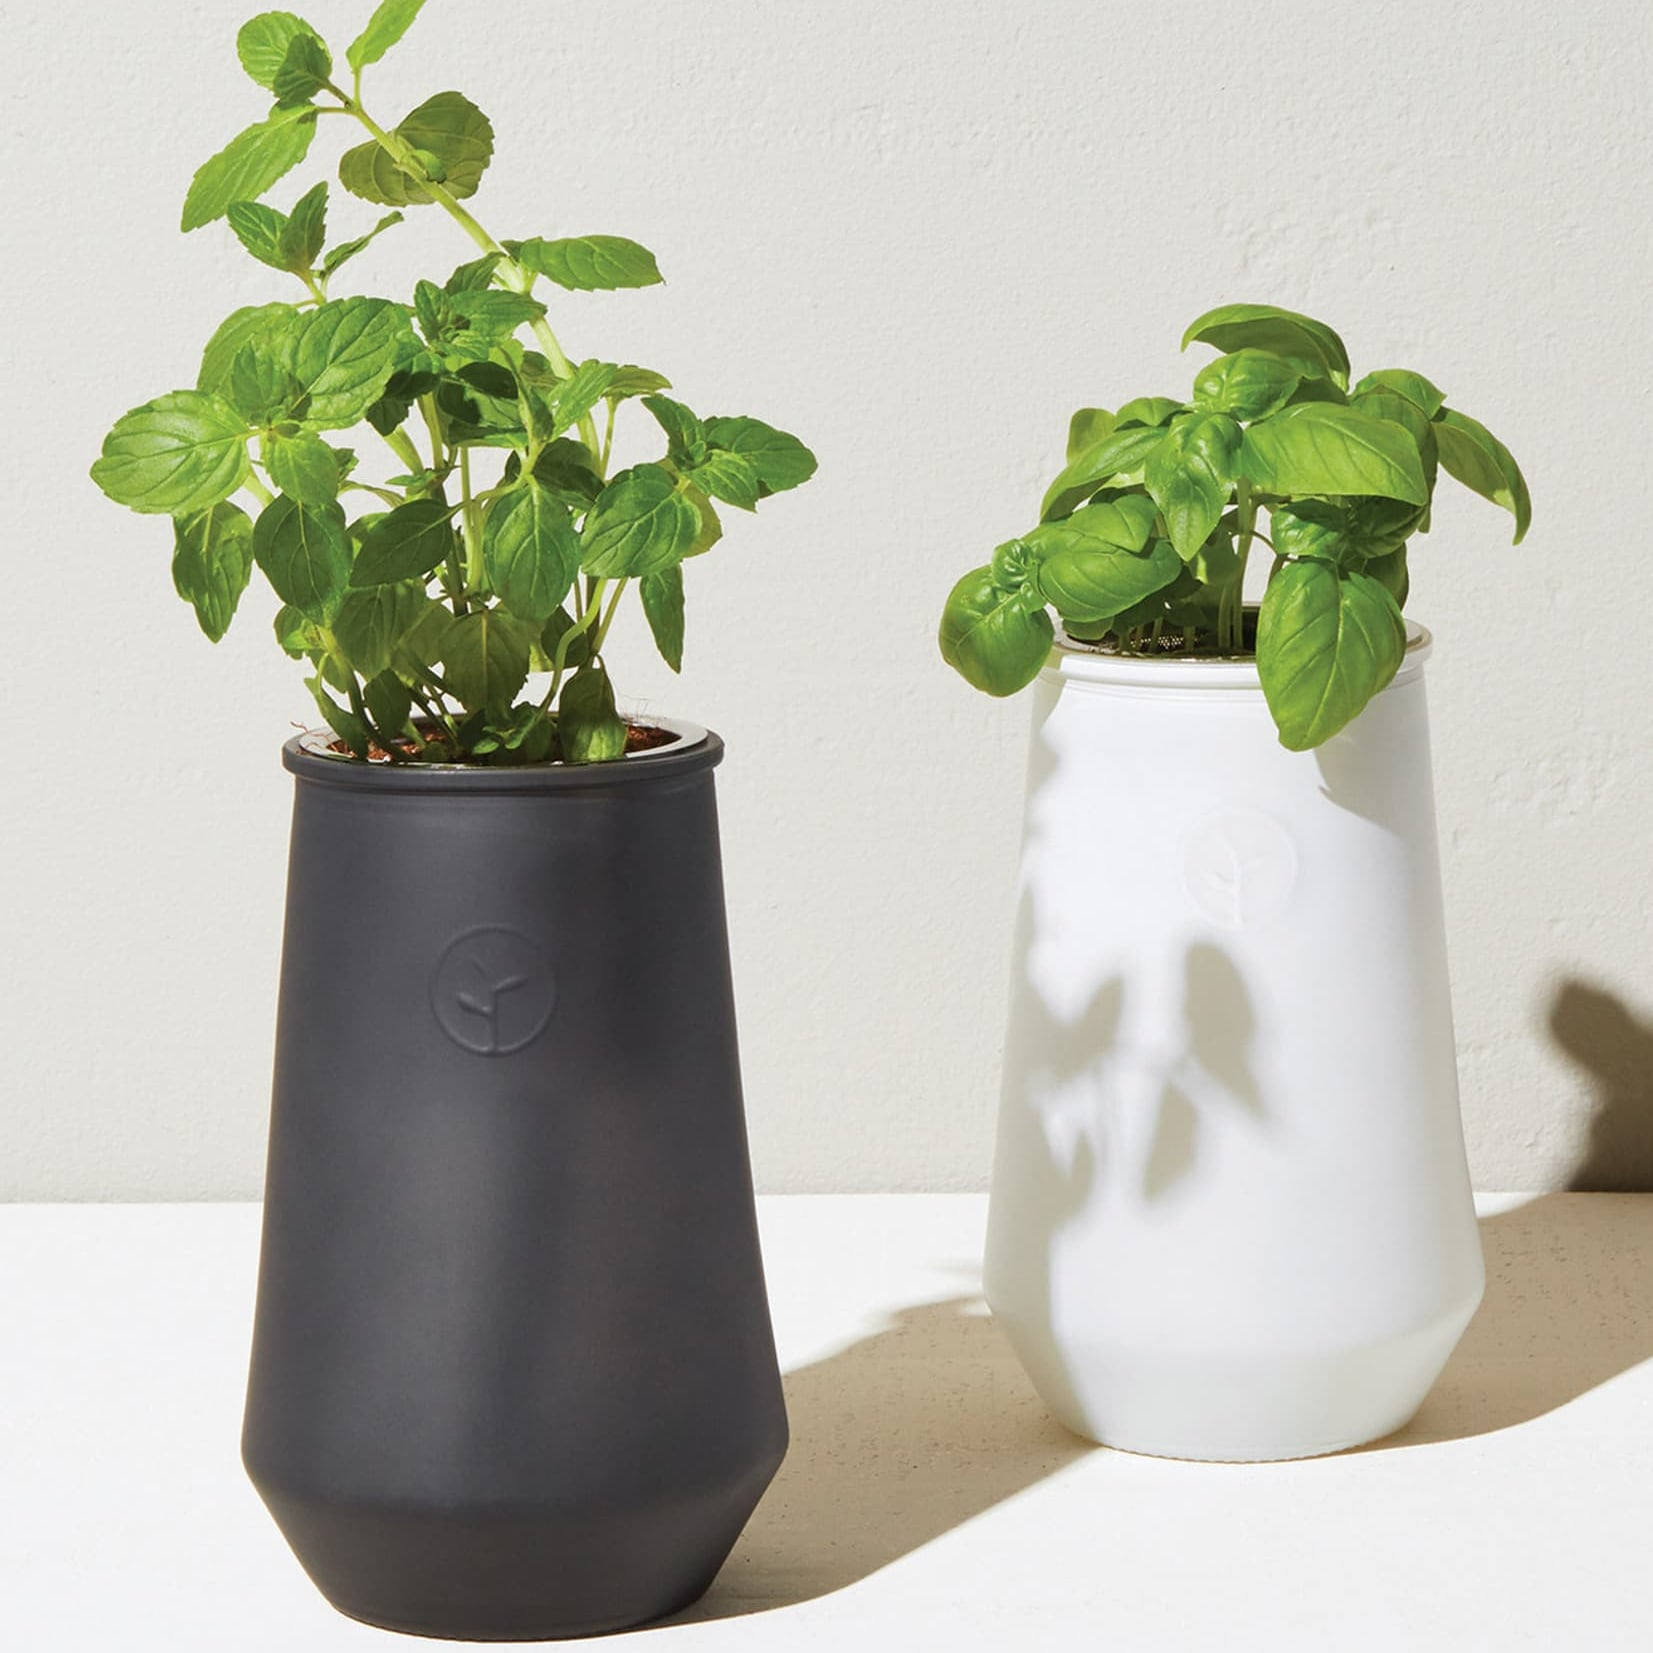 Cute and <b>Cheap</b> Gifts Under $50 From Nordstrom | POPSUGAR Smart Living